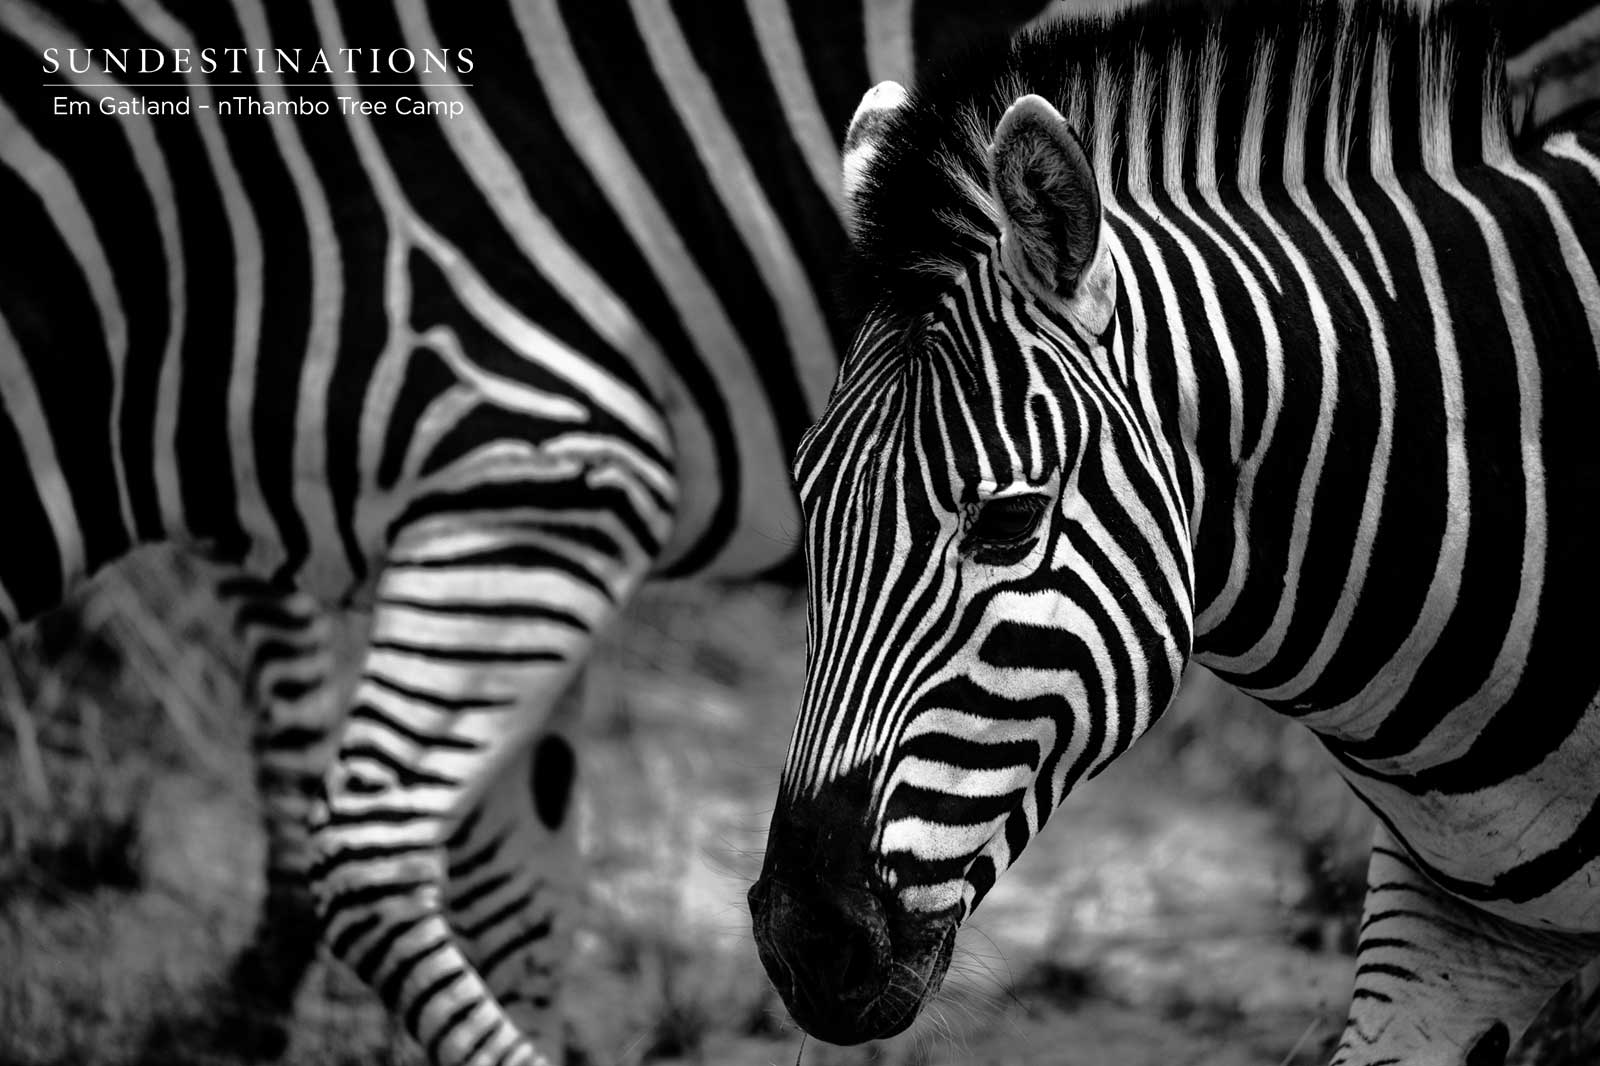 Zebra Herds at nThambo Tree Camp